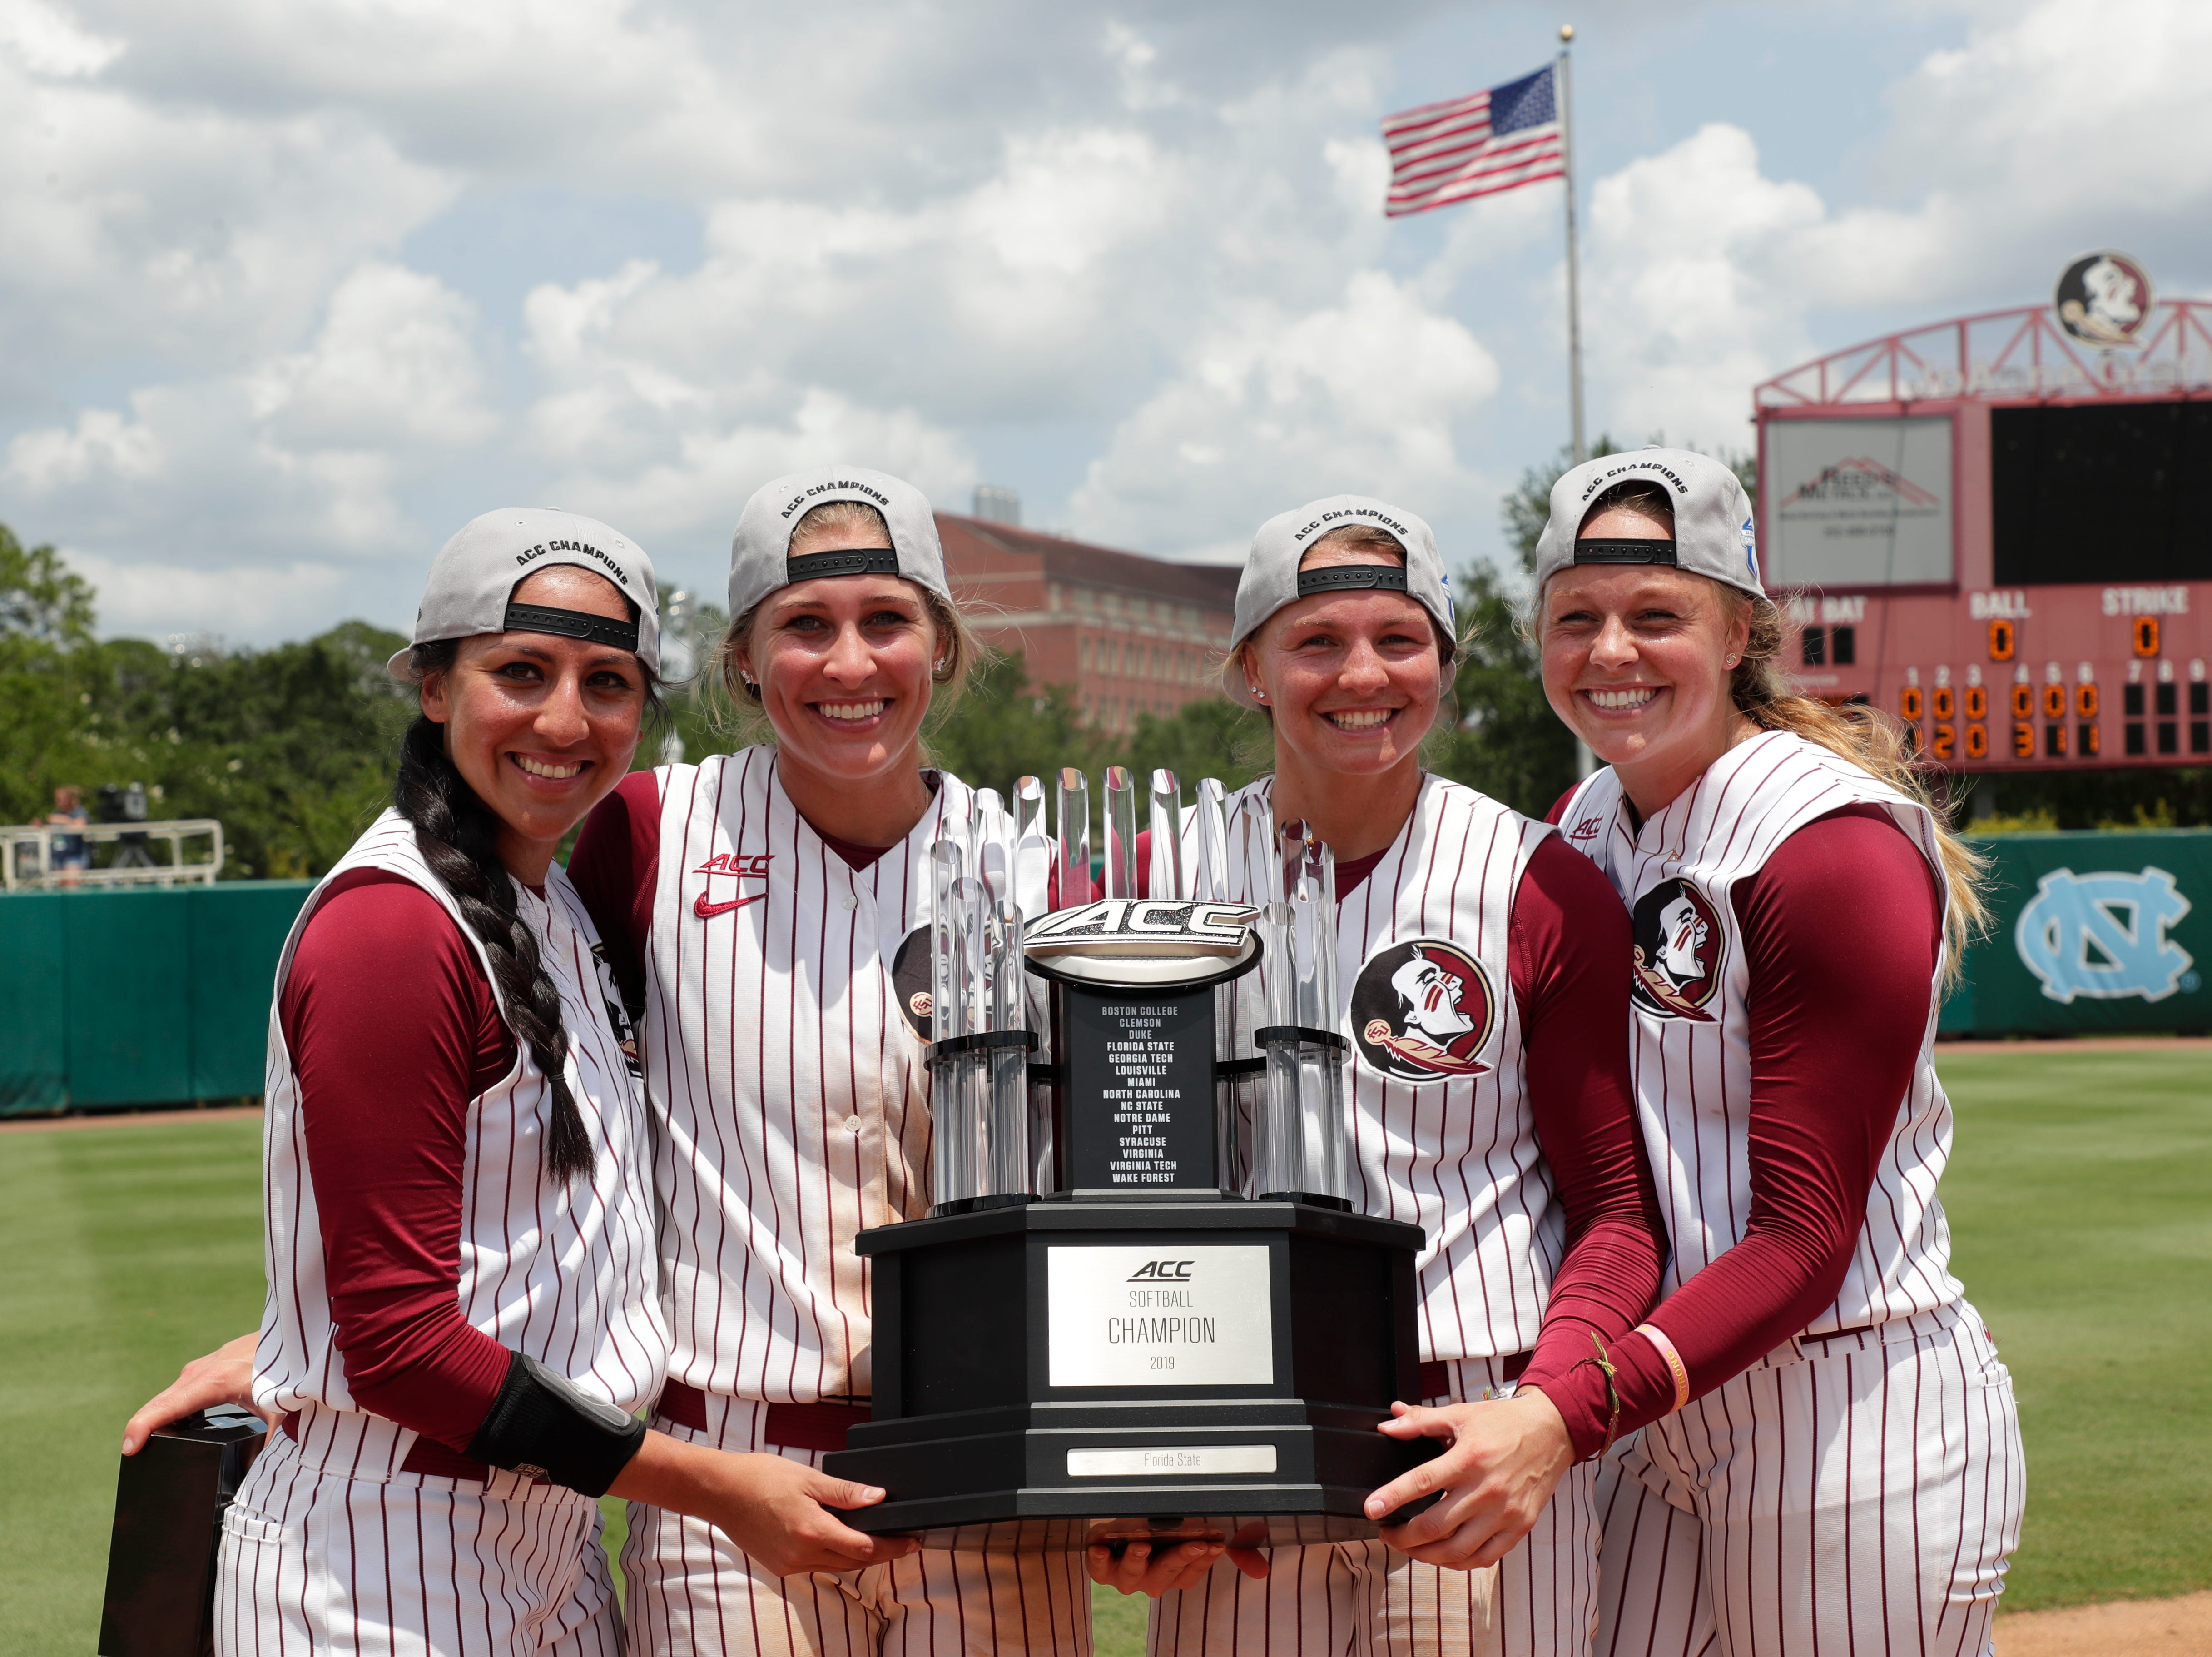 Florida State Seminoles outfielder Zoe Casas (6), Florida State Seminoles infielder Carsyn Gordon (12), Florida State Seminoles infielder Cali Harrod (10), and Florida State Seminoles starting pitcher/relief pitcher Meghan King (48) pose for a photo with the championship trophy. The Florida State Seminoles celebrate their victory over the UNC Tar Heels for the ACC Softball Championship title Saturday, May 11, 2019.